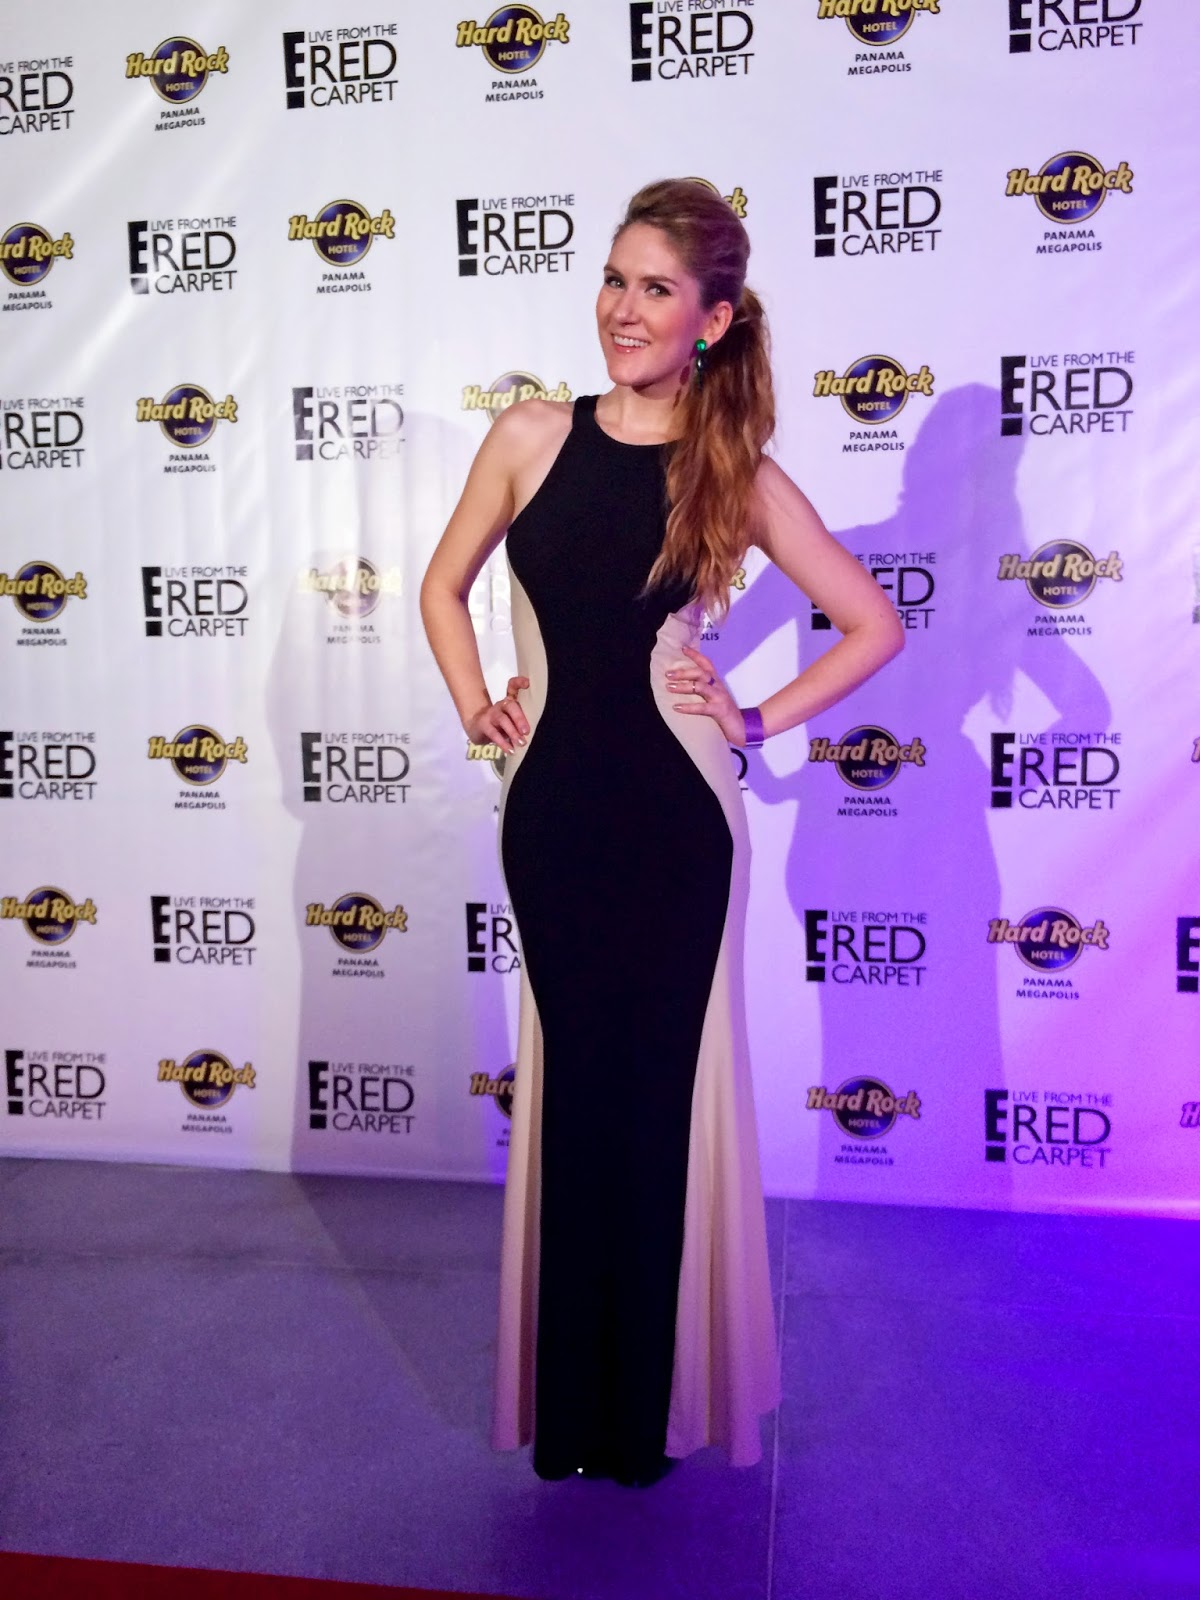 Red Carpet Fashion. This dress is from Sammydress.com